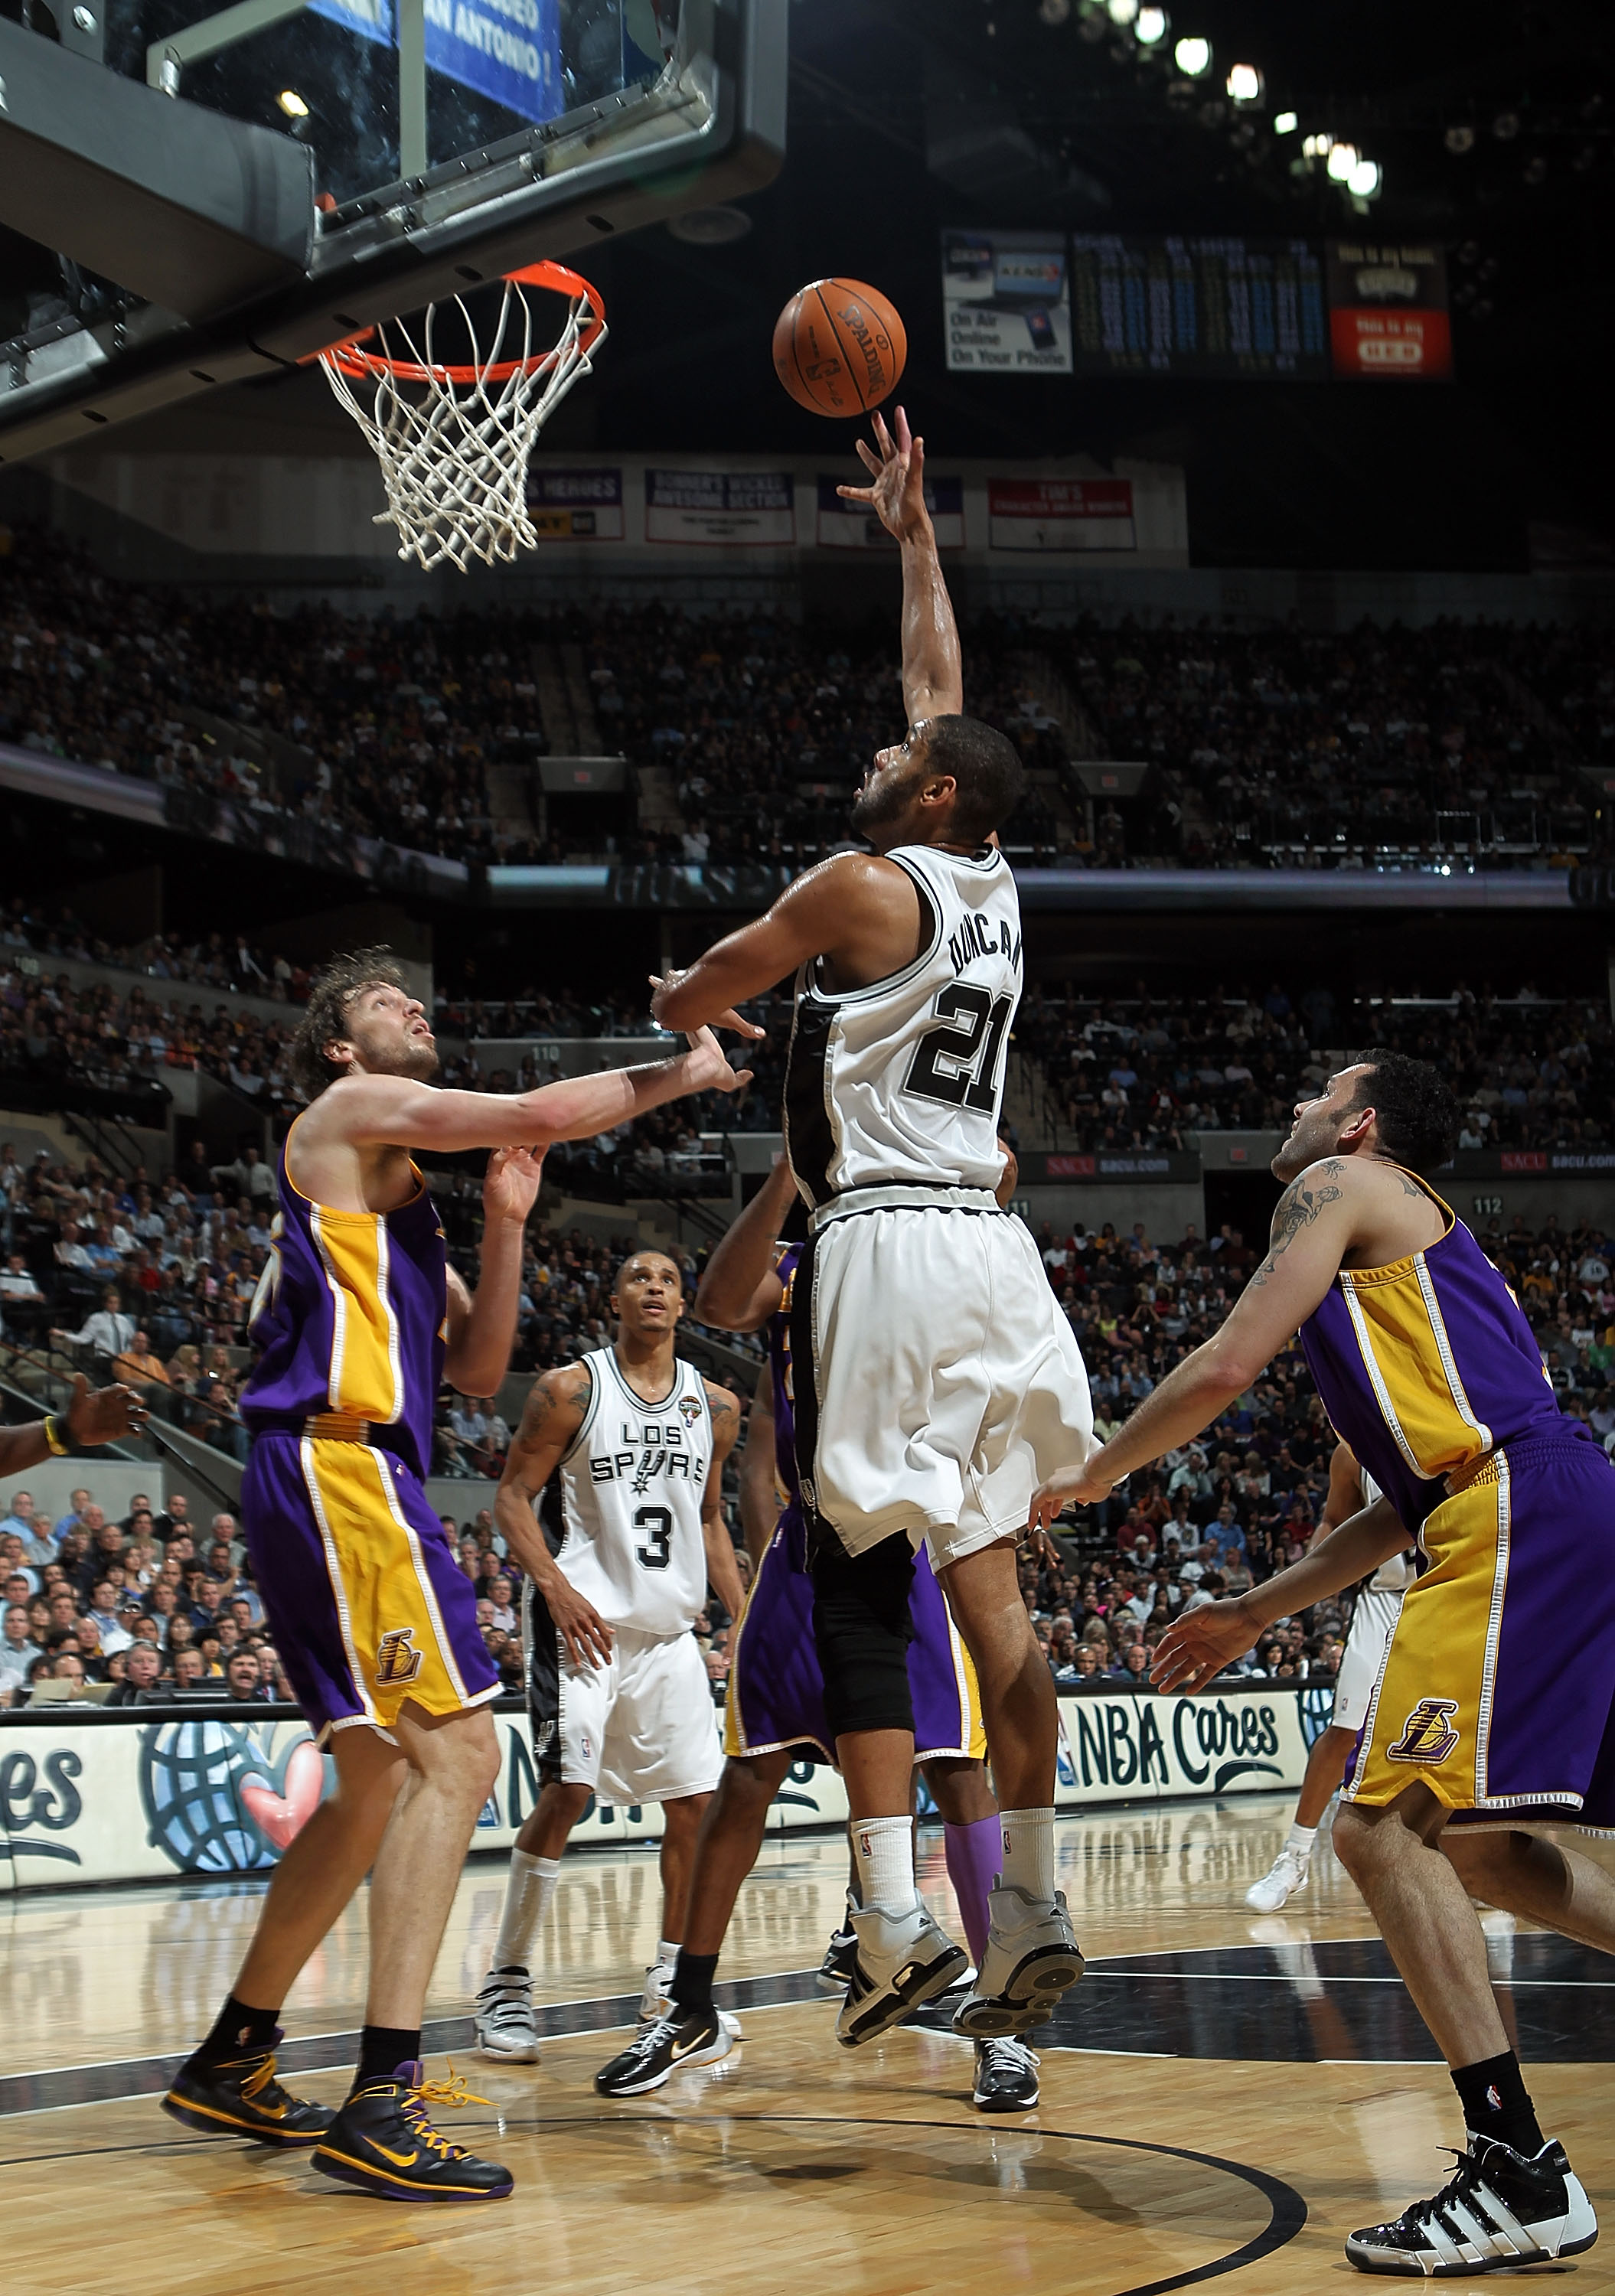 SAN ANTONIO - MARCH 24: Forward Tim Duncan #21 of the San Antonio Spurs takes a shot against Pau Gasol #16 of the Los Angeles Lakers at AT&T Center on March 24, 2010 in San Antonio, Texas. NOTE TO USER: User expressly acknowledges and agrees that, by down